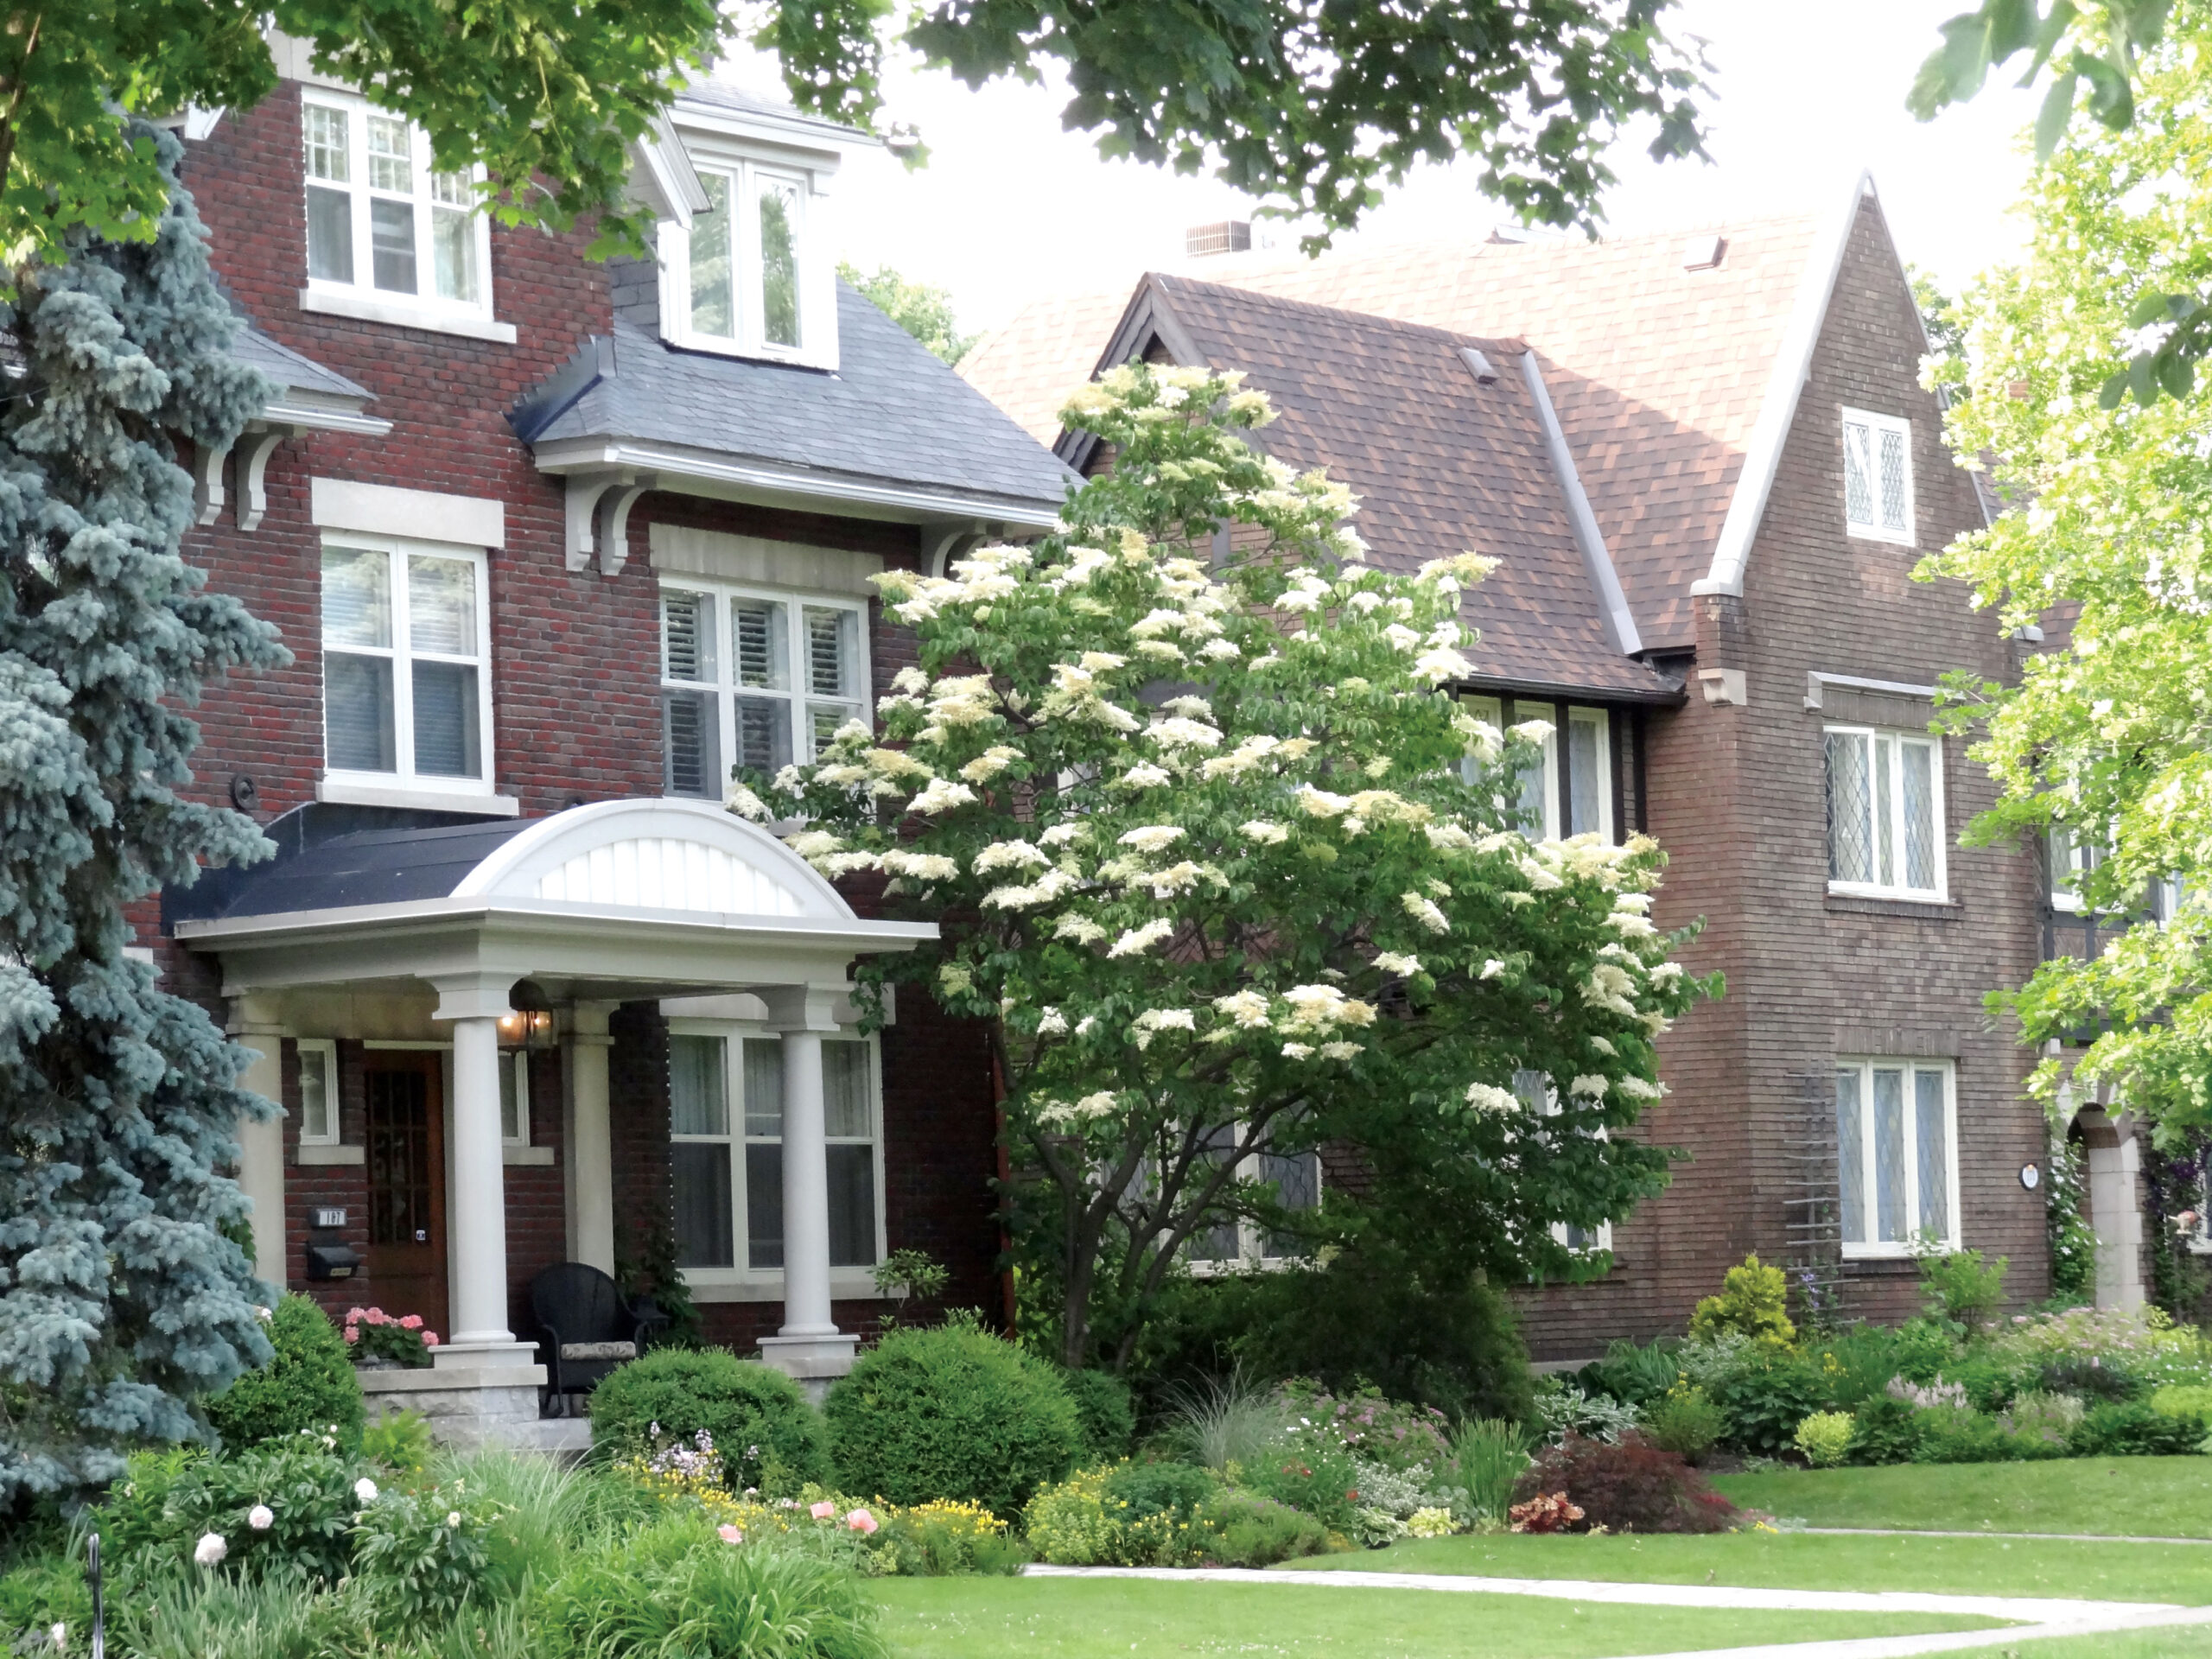 Home for Sale in Ottawa Shares Useful Home Buying Tips to Educate Homebuyers 30